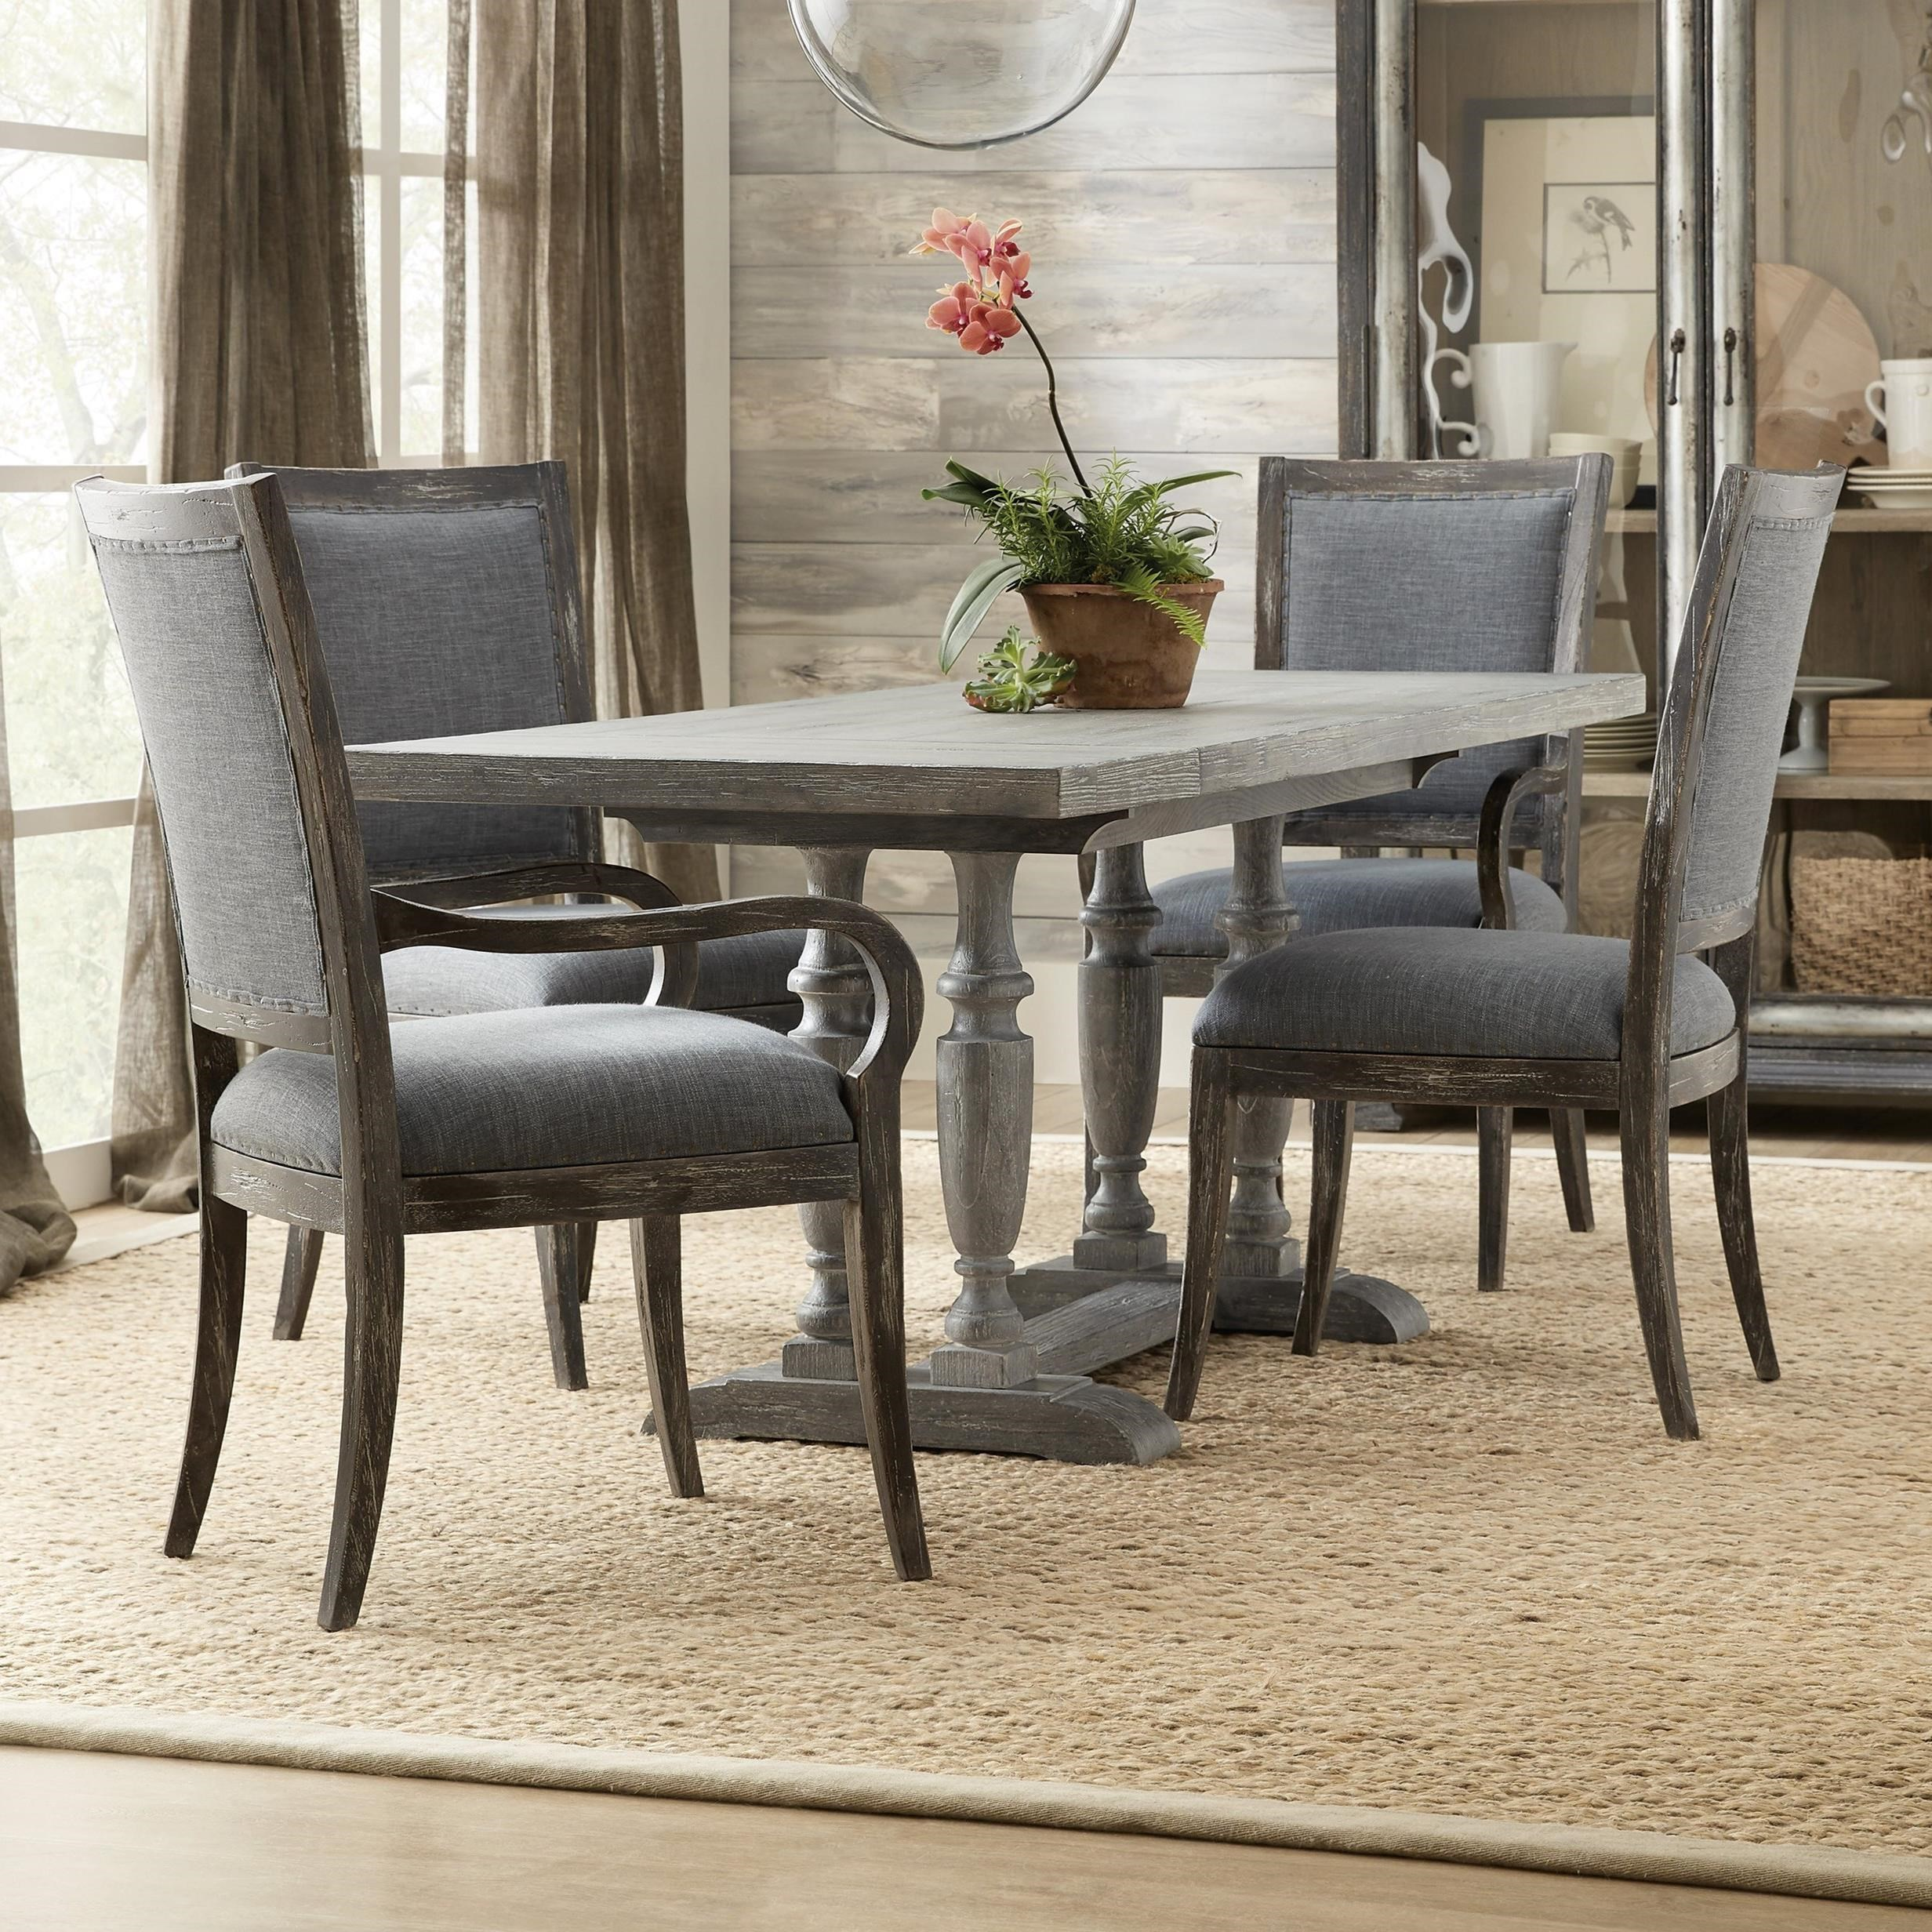 Beaumont 5-Piece Pub Table and Chair Set by Hooker Furniture at Miller Waldrop Furniture and Decor